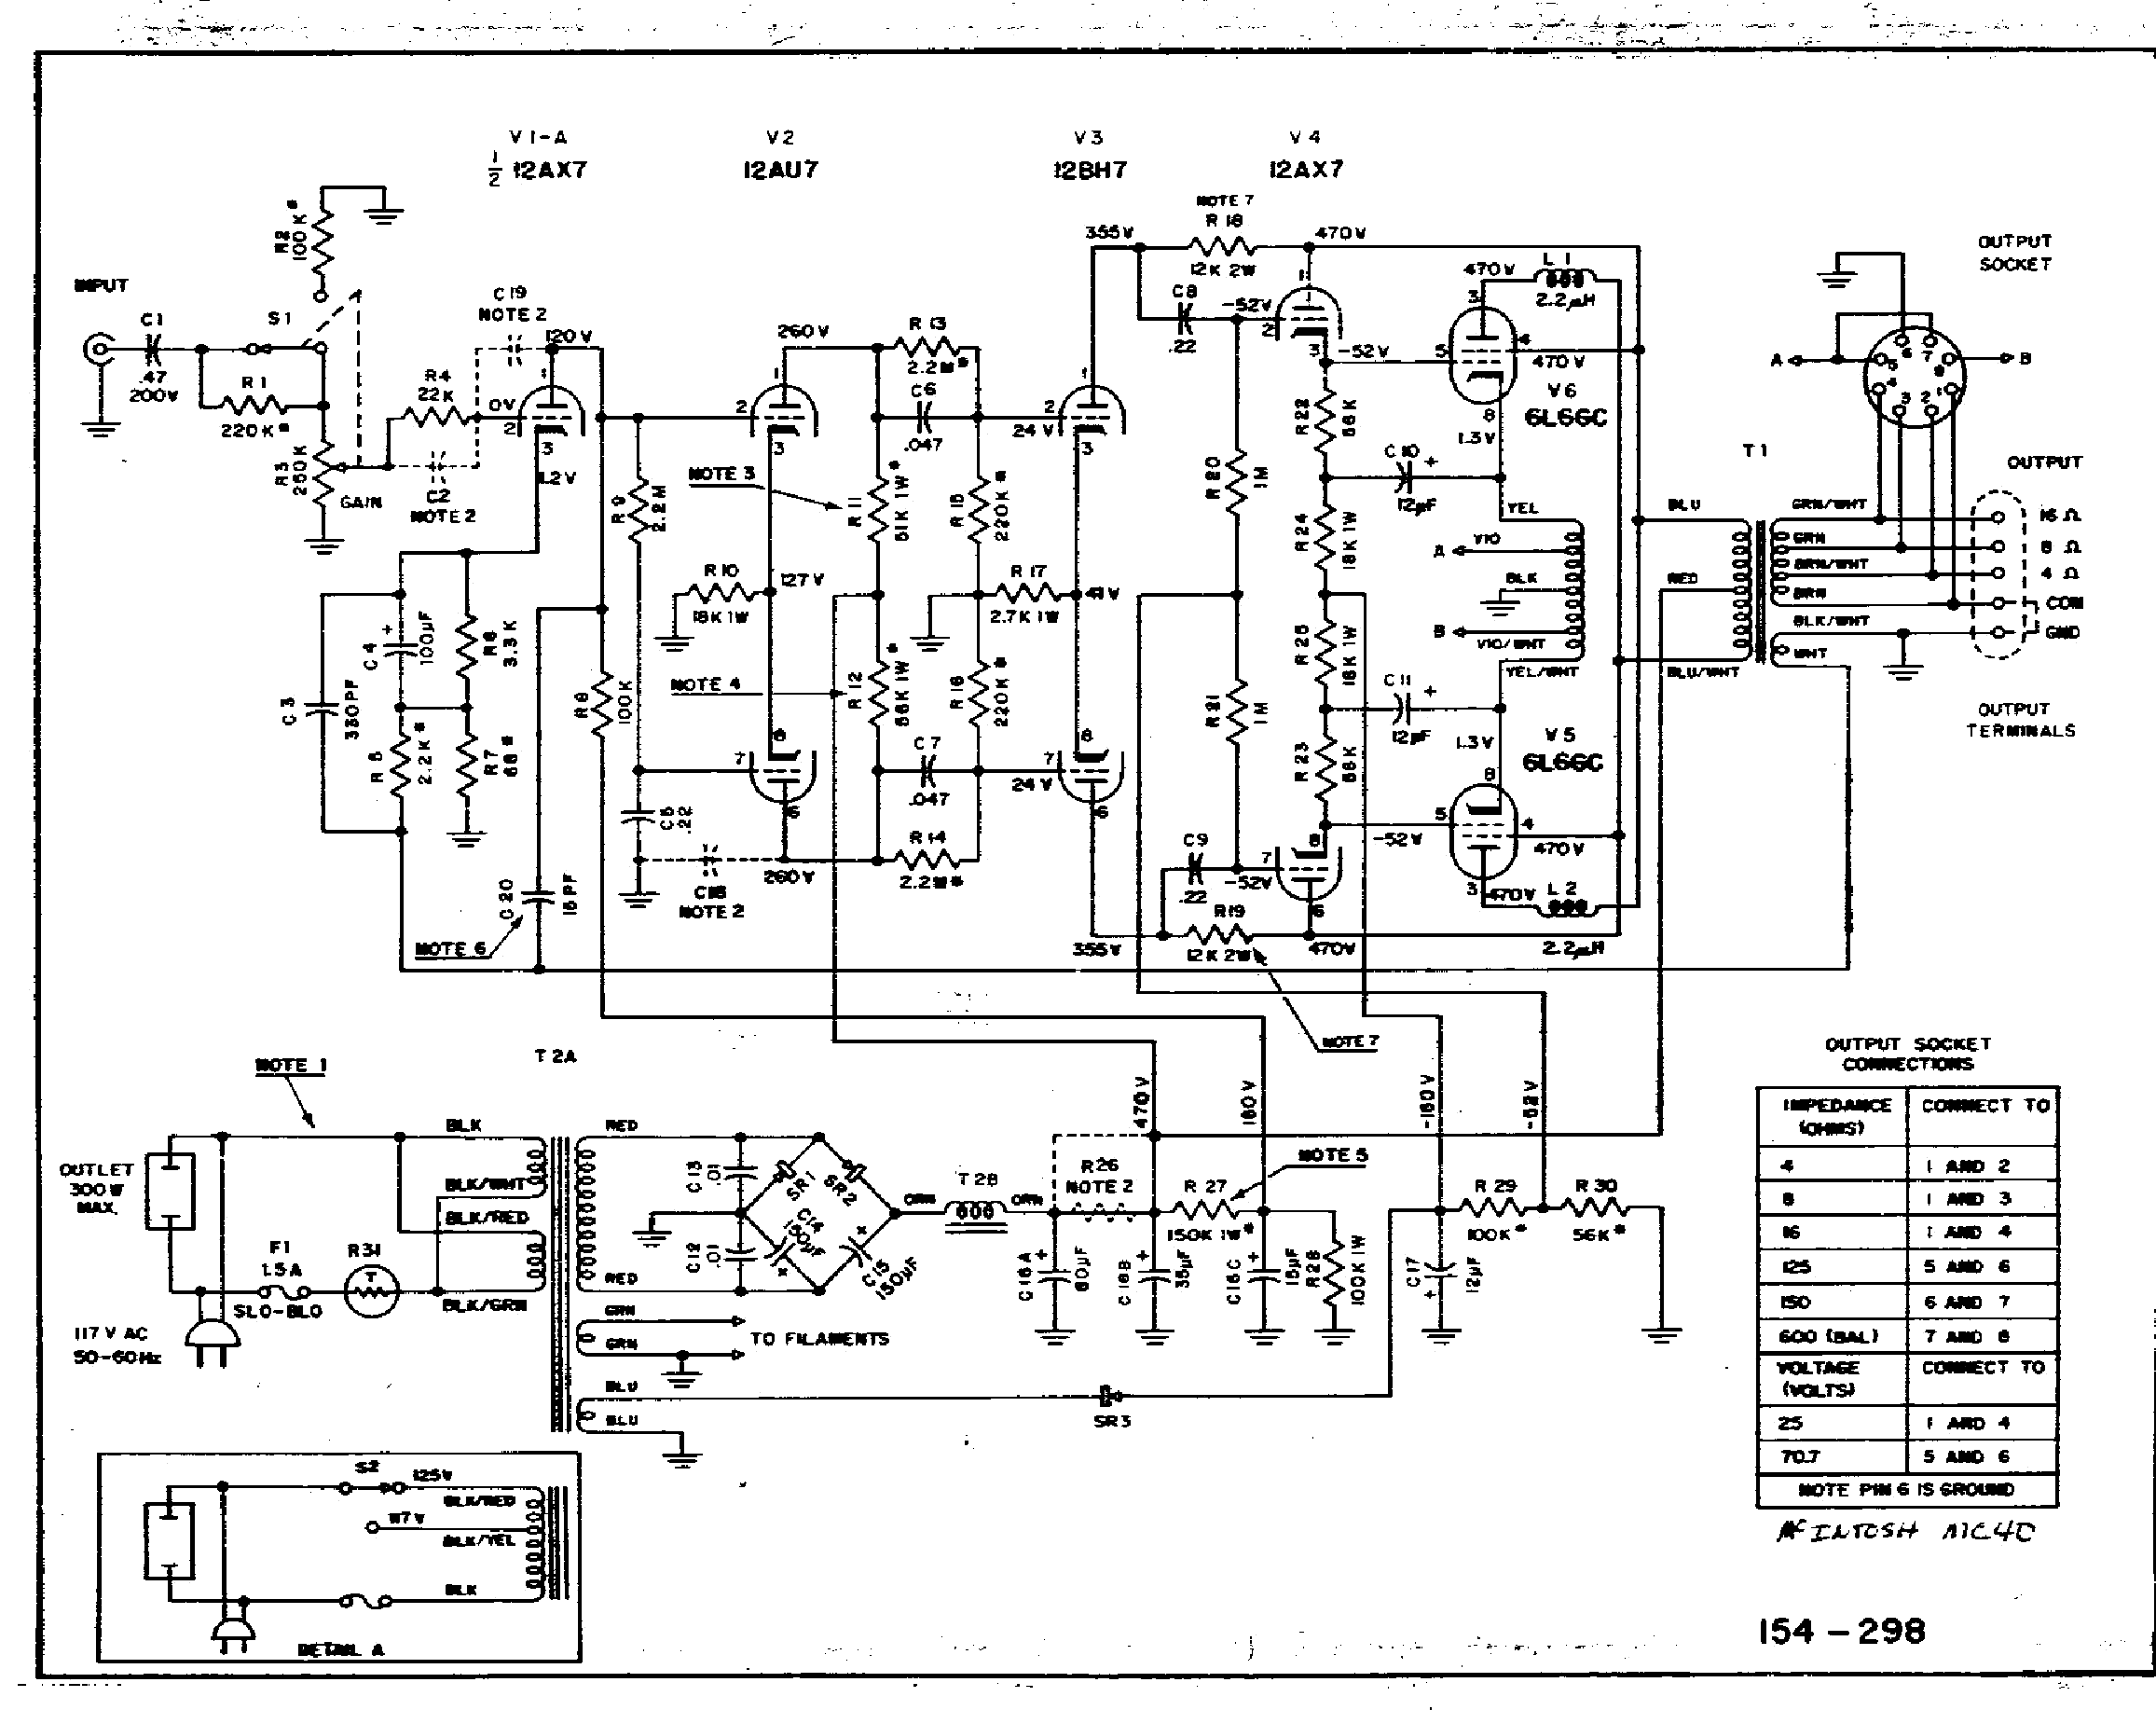 Mcintosh Mc40 Sch 1 Service Manual Download Schematics